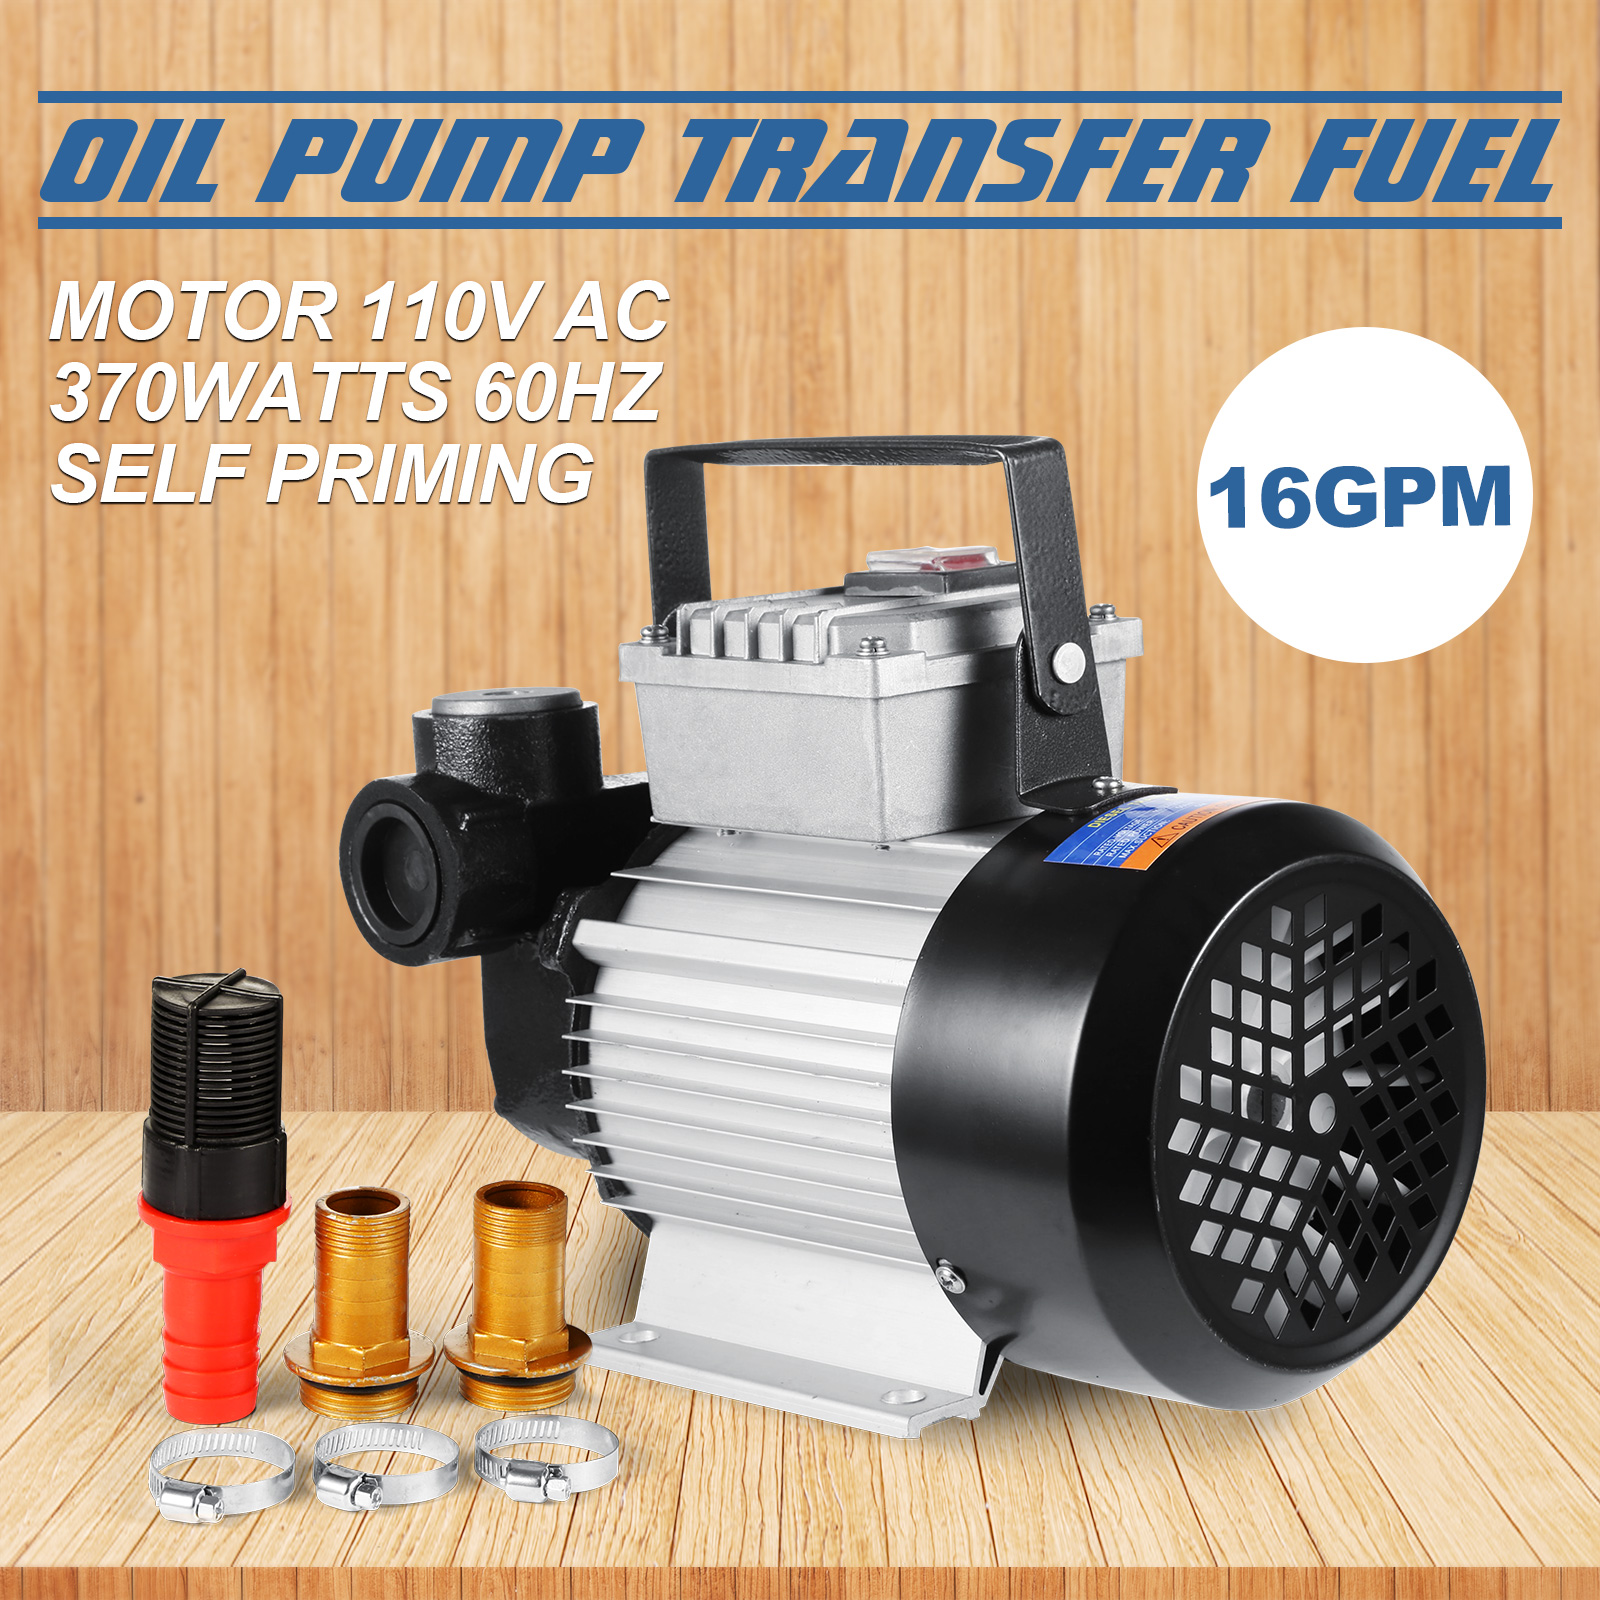 Self Priming Electric Oil Pump Transfer Fuel Diesel 110V AC 16GPM 370W